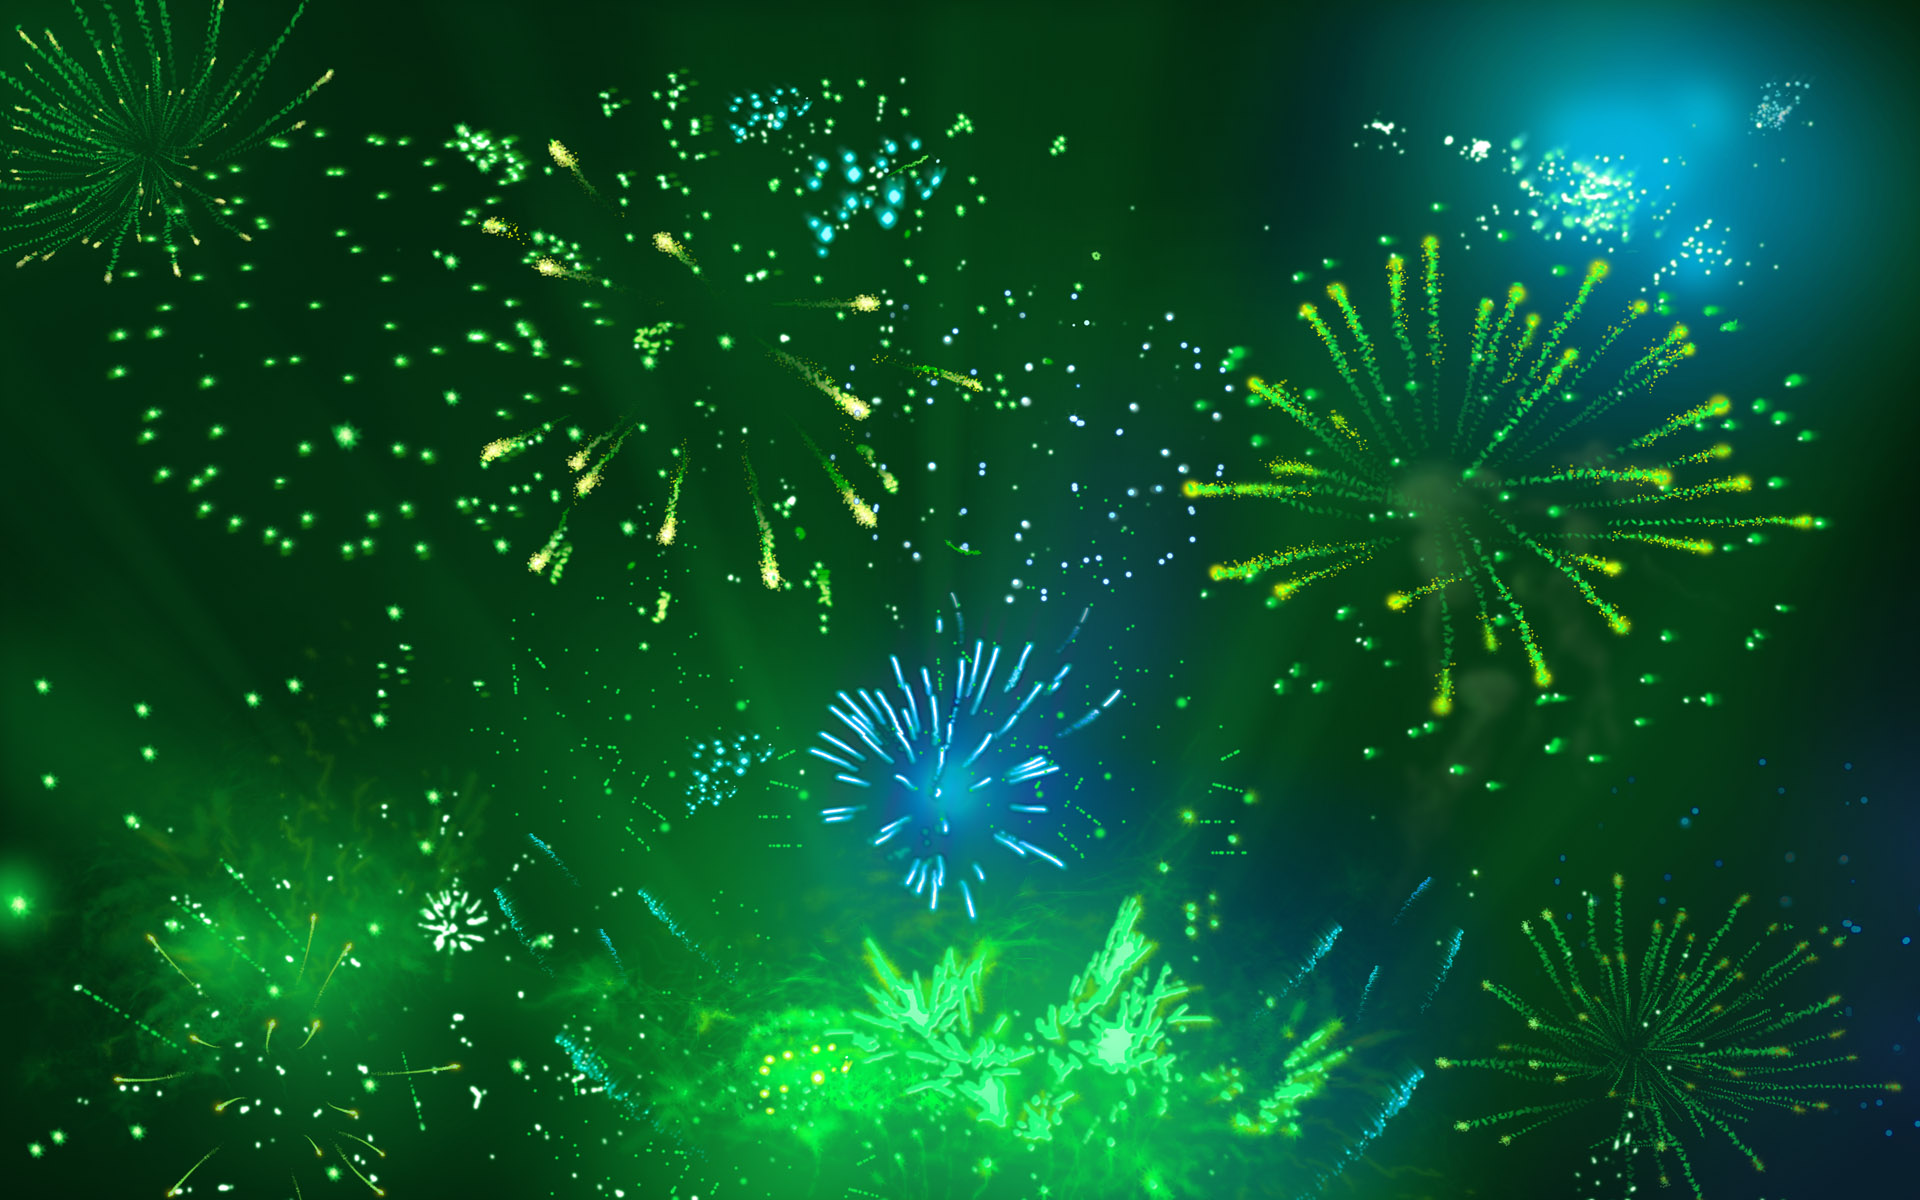 1920x1200 Green Fireworks desktop wallpapers and stock photos